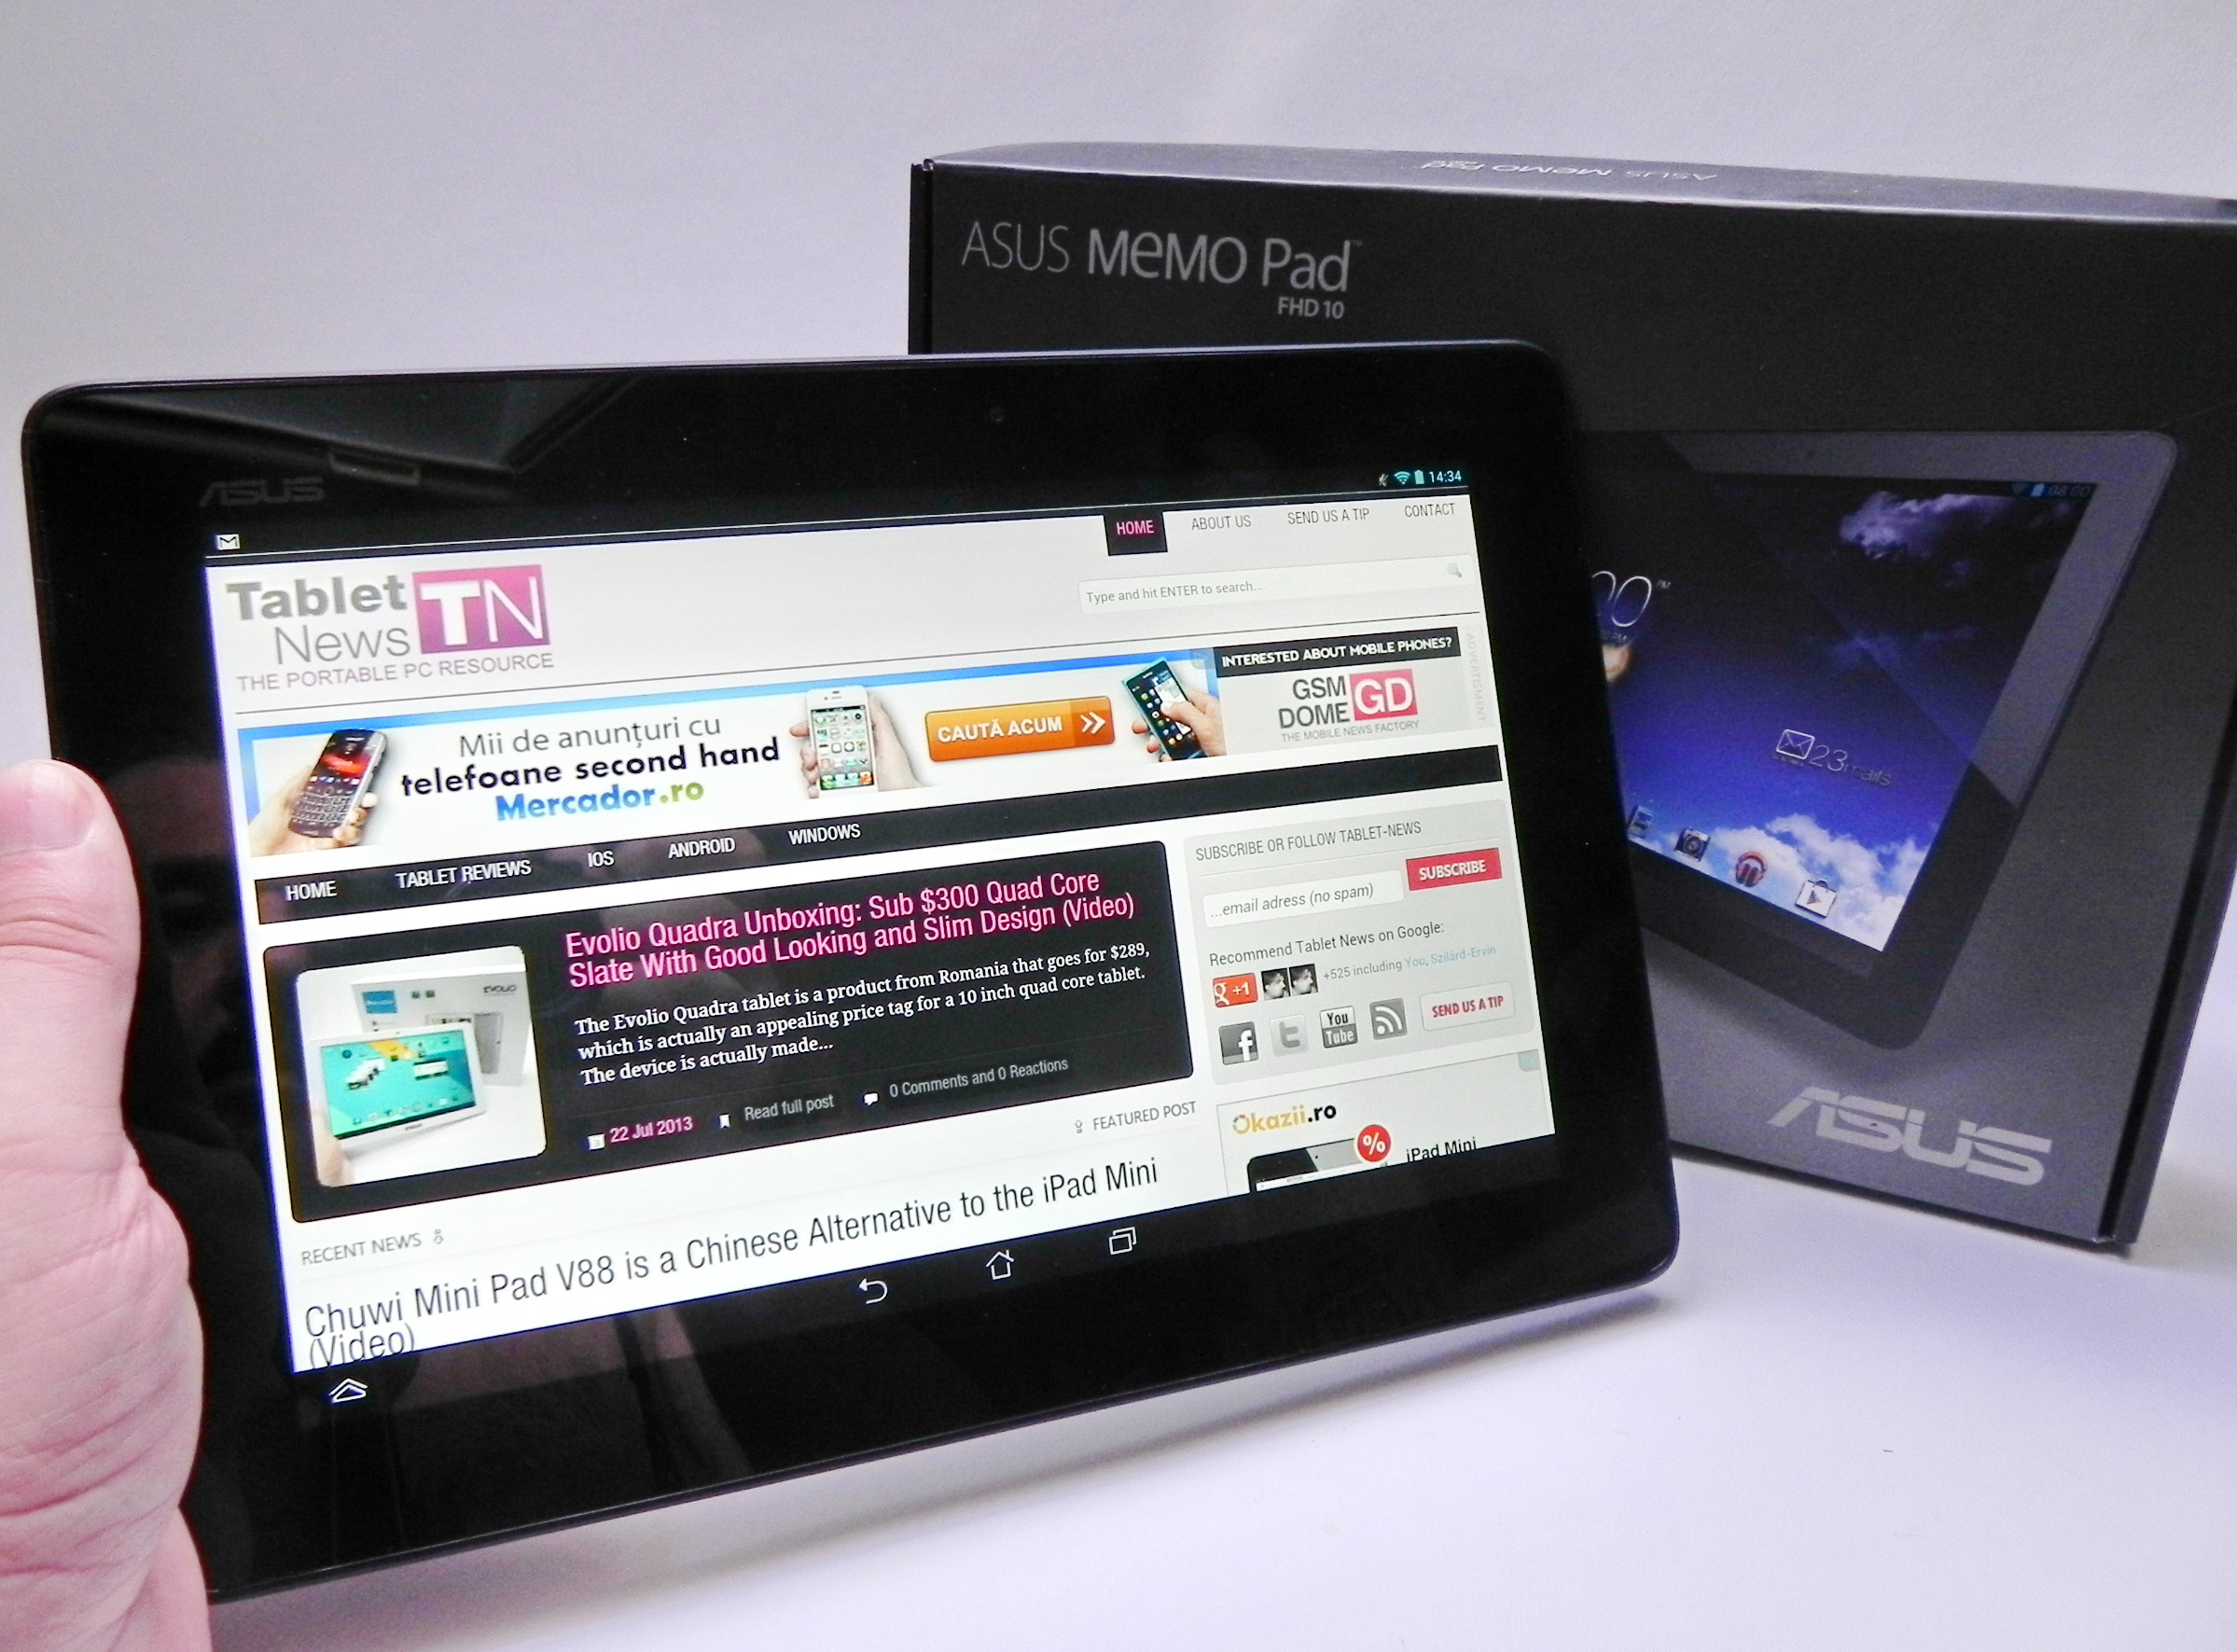 Asus Memo Pad Fhd 10 Review Exquisite Audio Experience